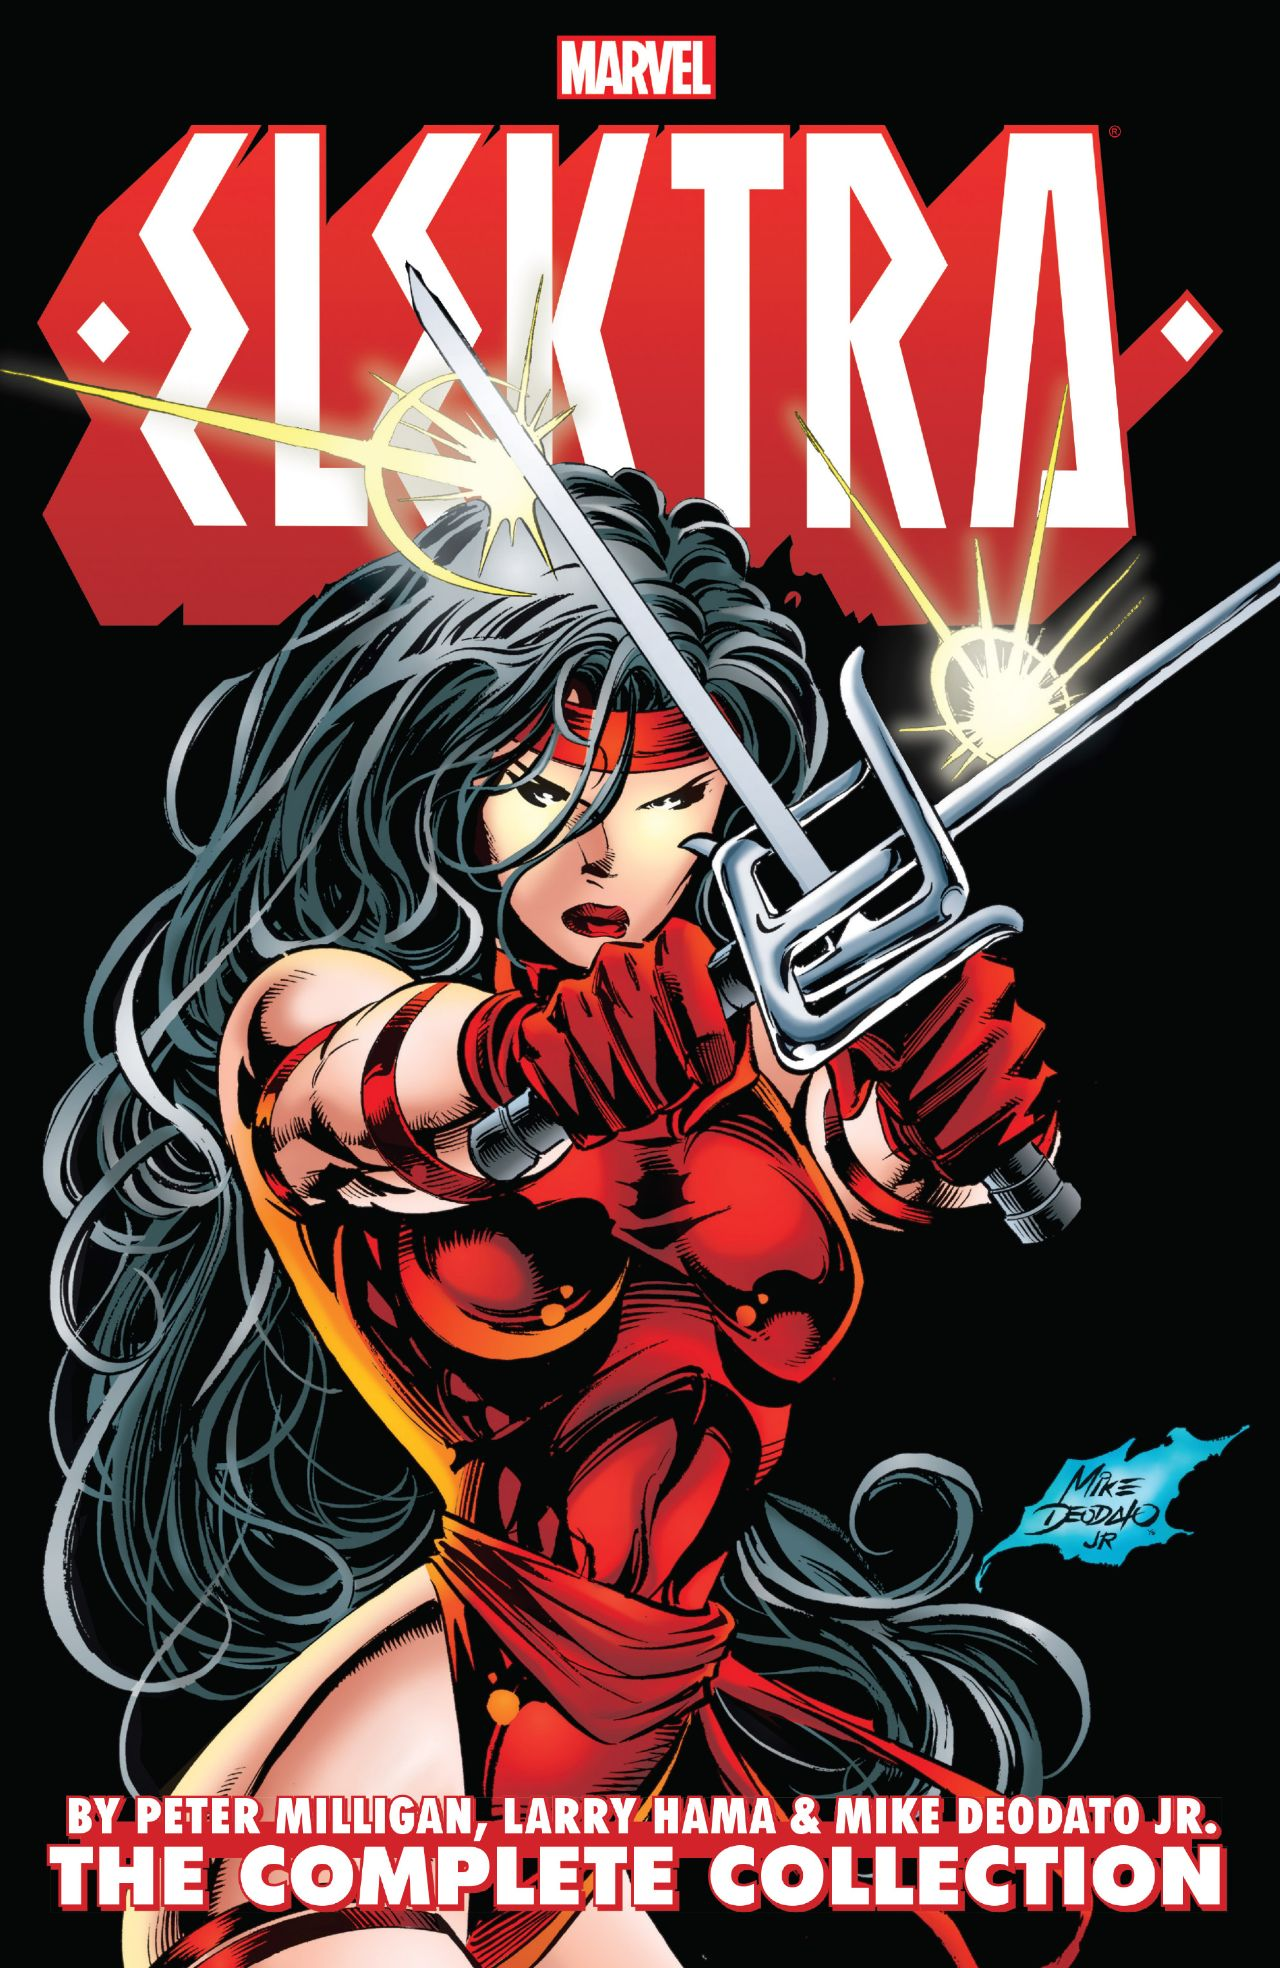 Elektra: The Complete Collection Review